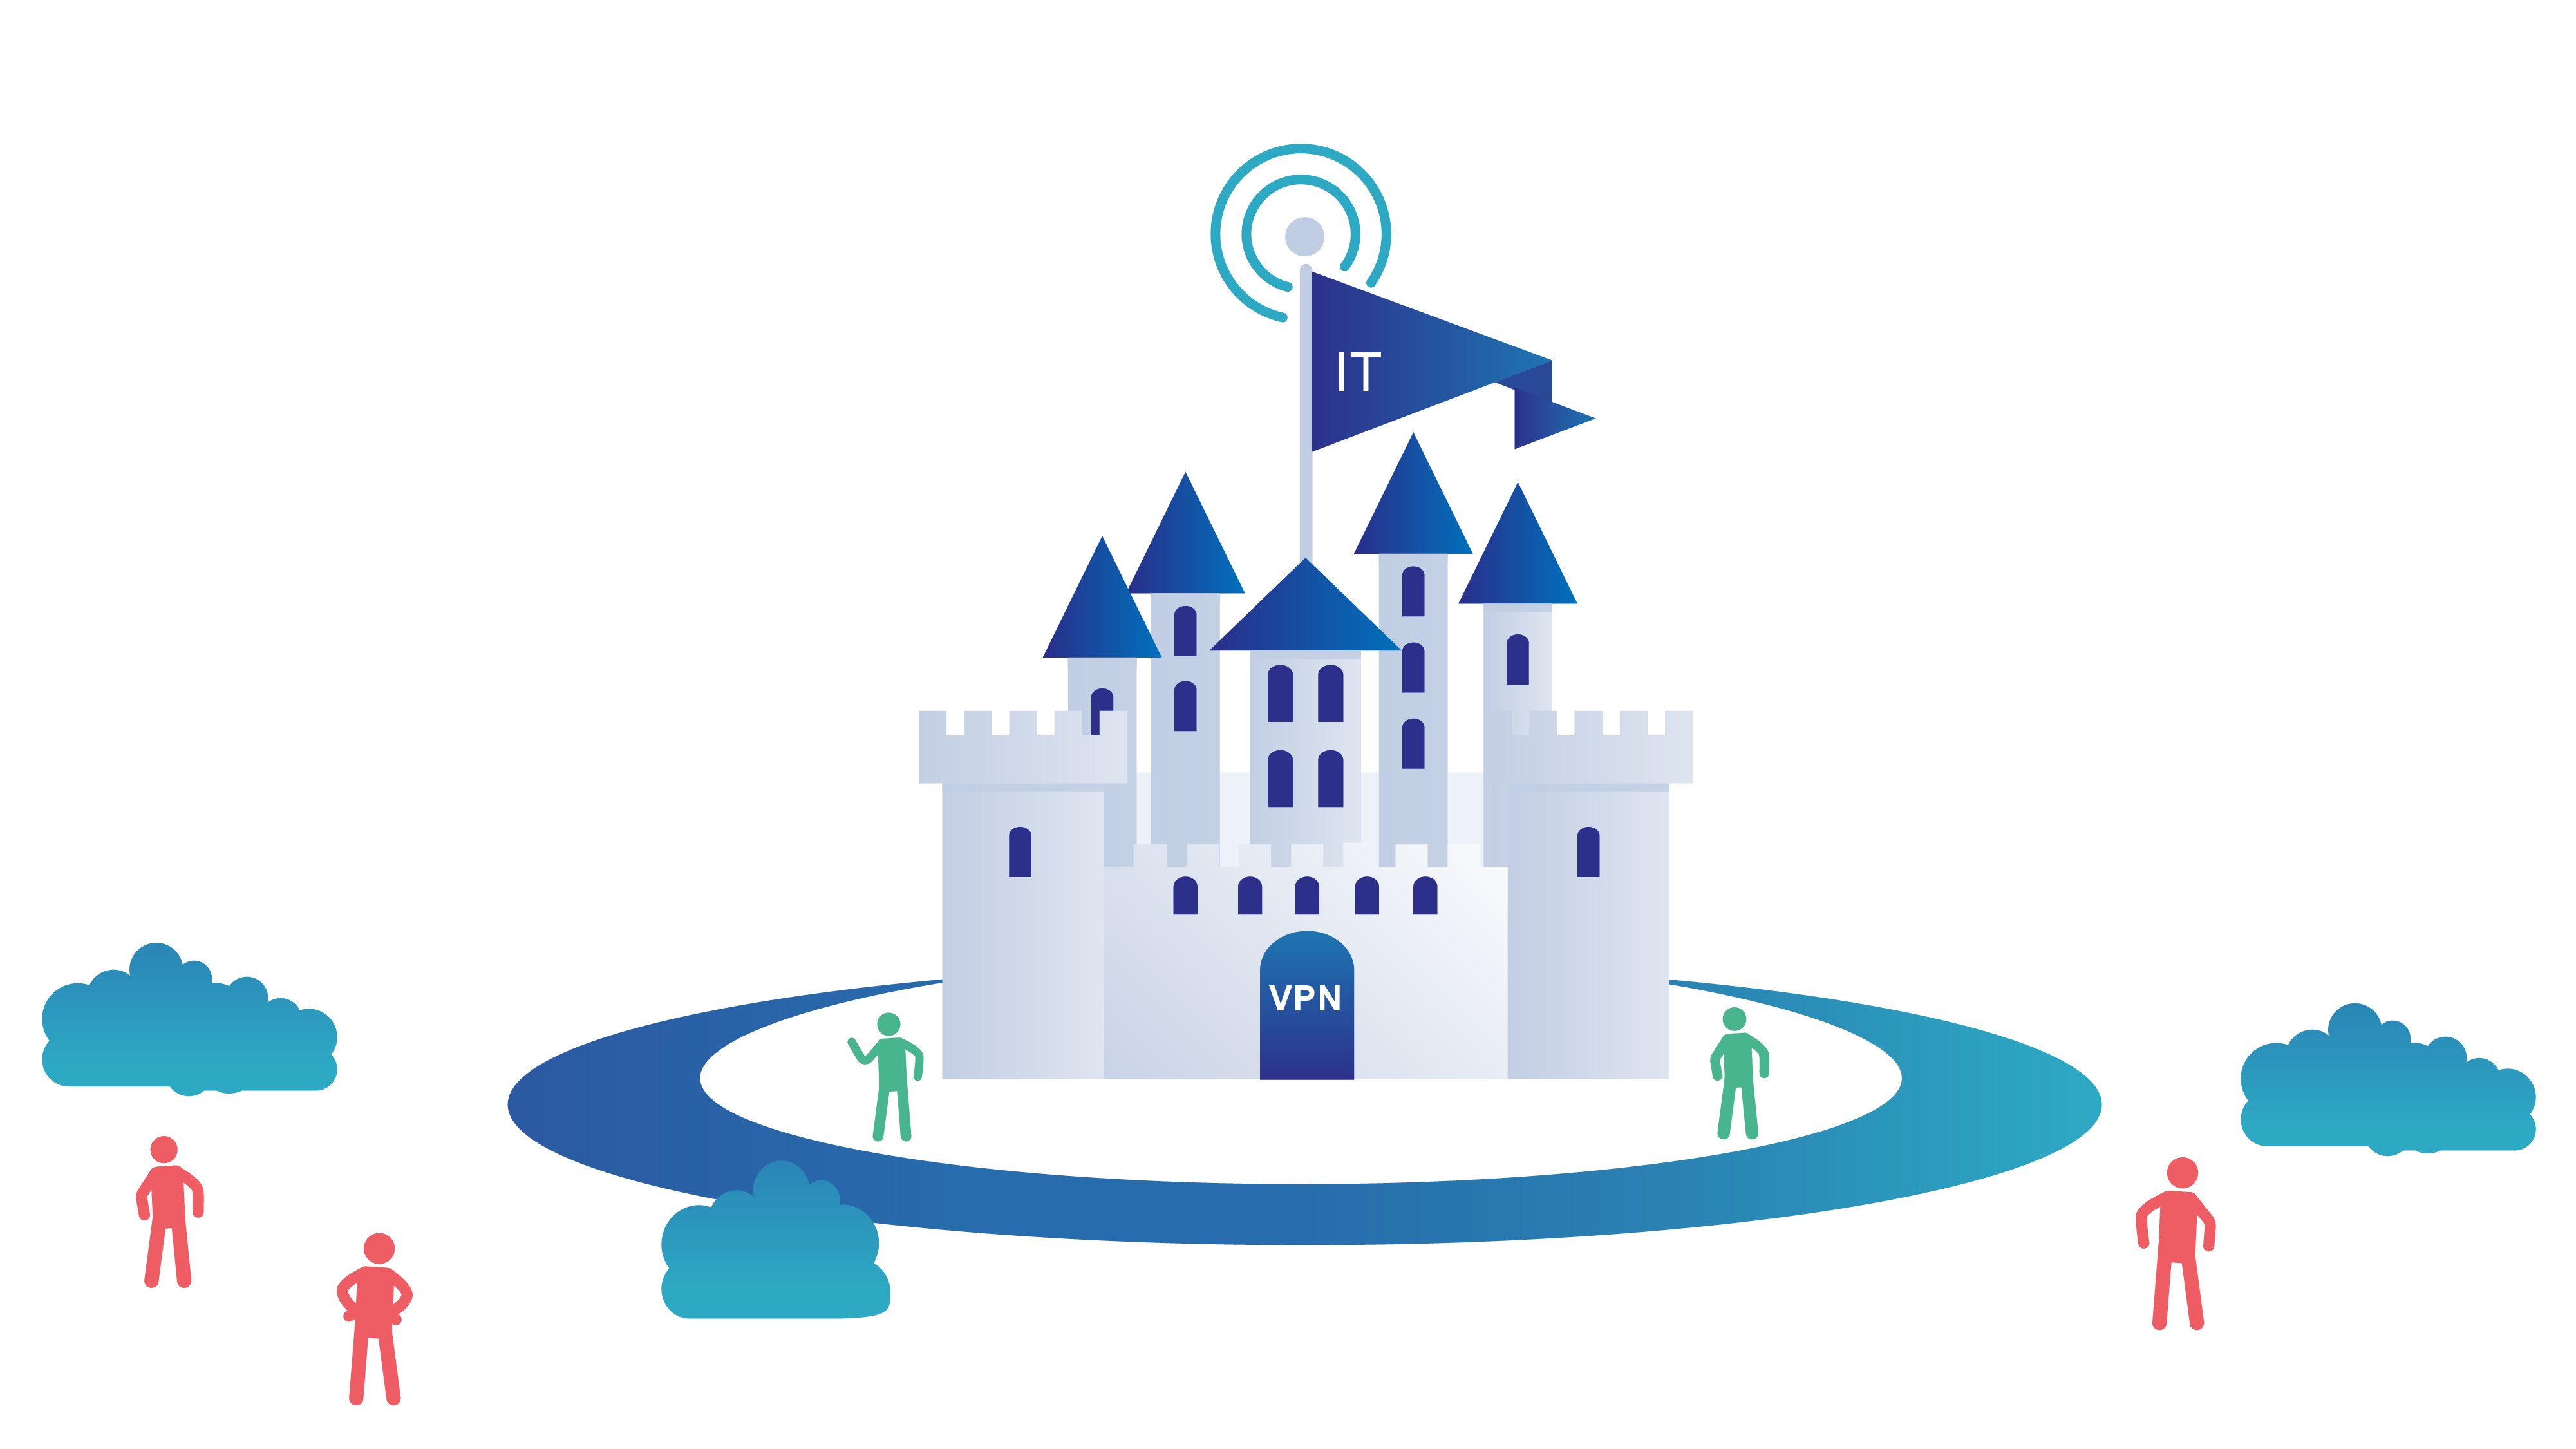 Castle-and-Moat security model, users within the VPN are trusted